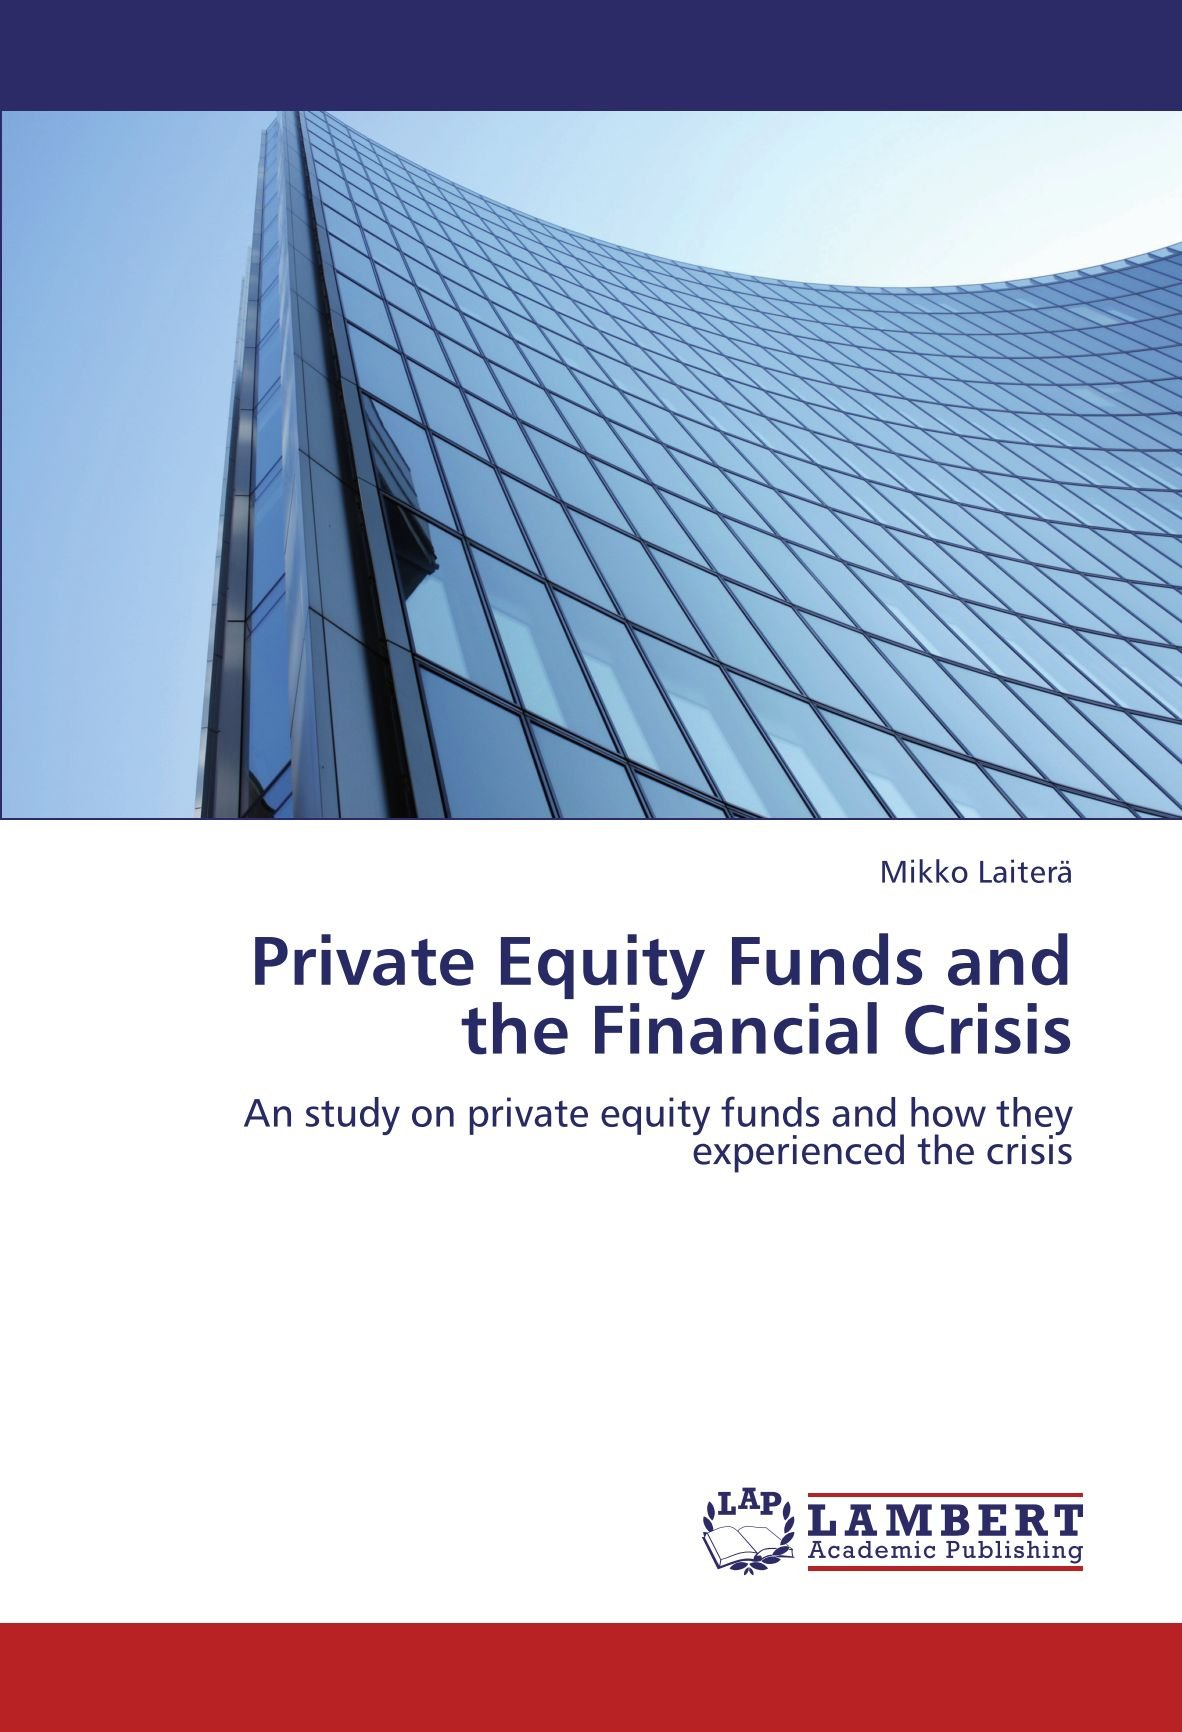 Private Equity Funds and the Financial Crisis: An study on private equity funds and how they experienced the crisis